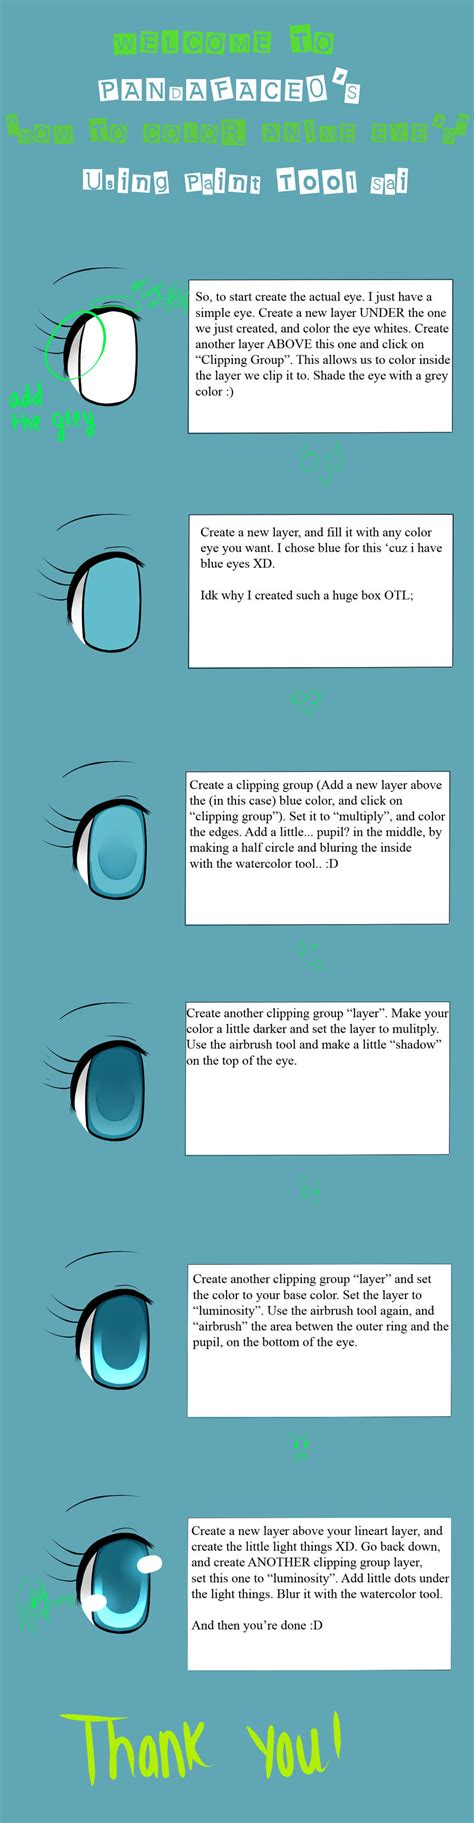 paint tool sai tutorial anime anime eye tut paint tool sai by pandaface0 on deviantart